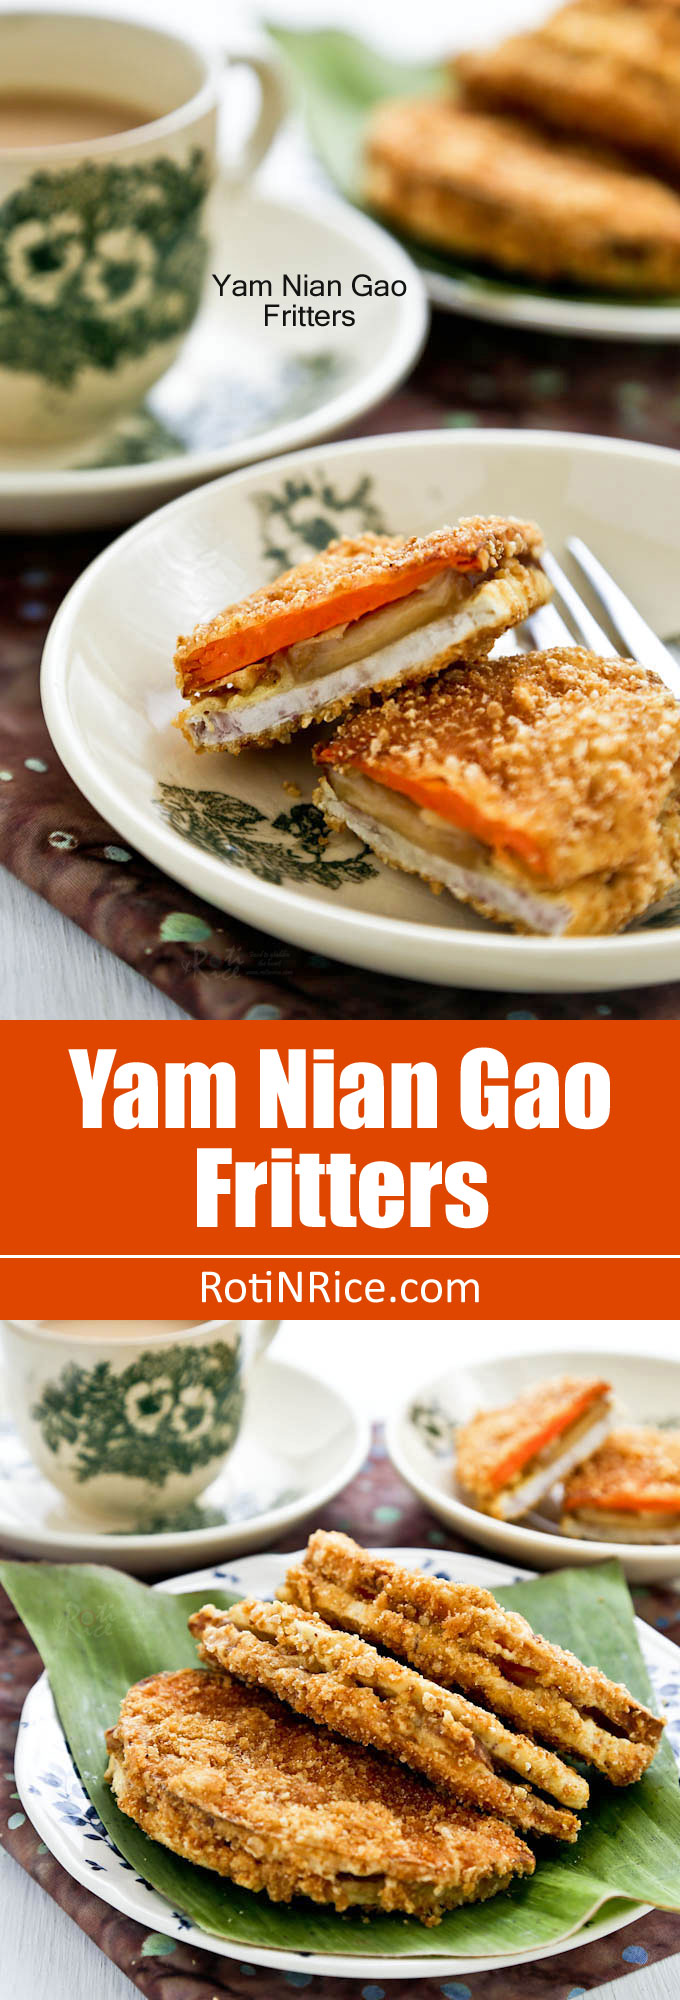 Yam Nian Gao Fritters - a Chinese New Year crispy treat of  new year cake sandwiched between slices of taro (a.k.a yam) and sweet potatoes dipped in batter. | RotiNRice.com